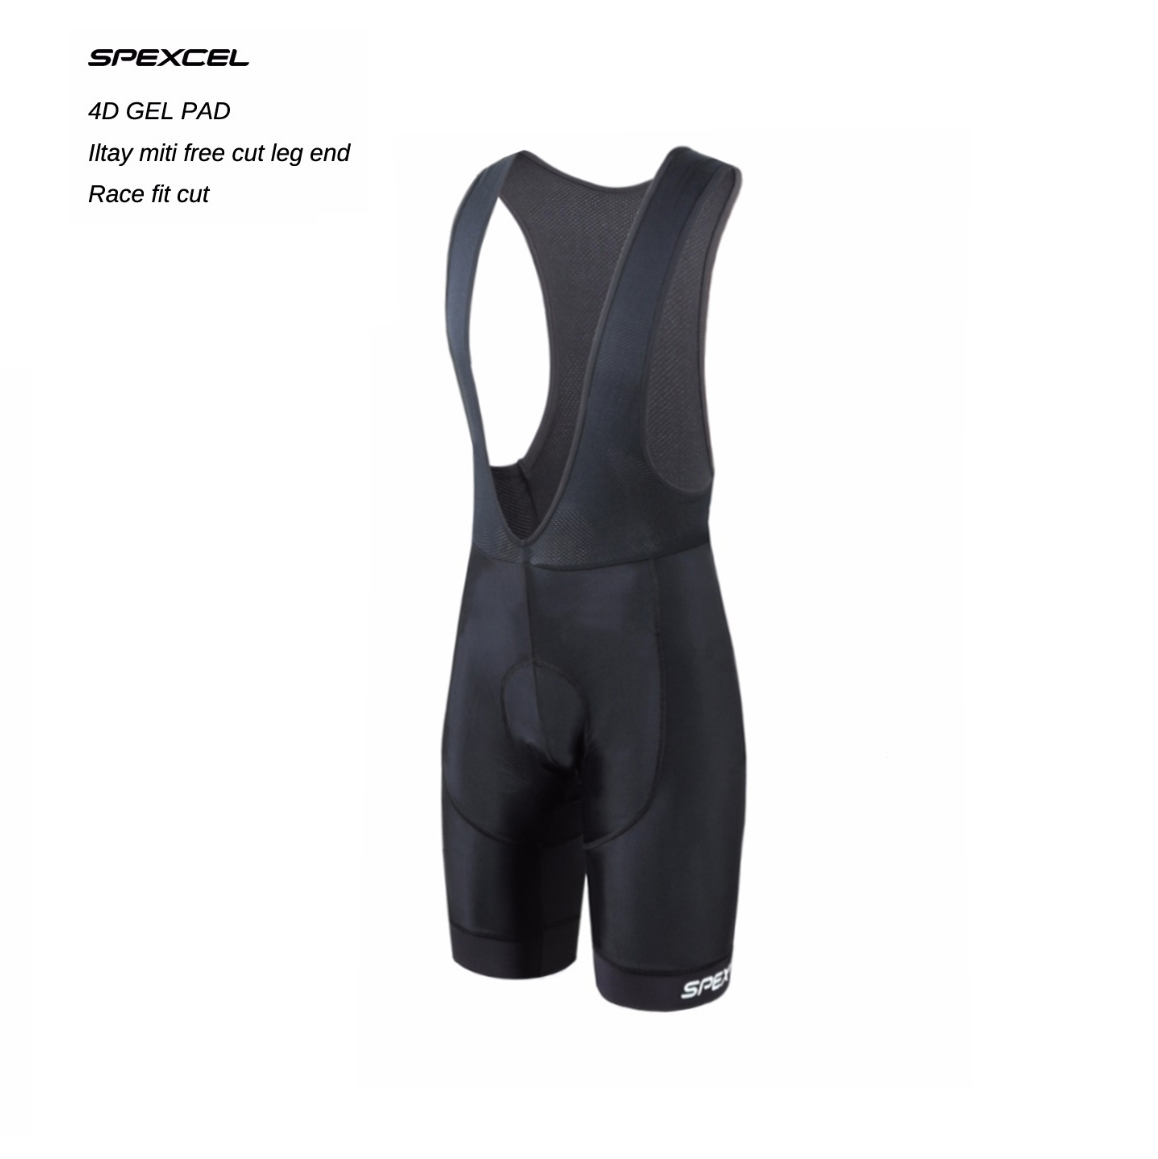 SPEXCEL High Quality Classic Bib Shorts Race Bicycle Bottom Ropa Ciclismo Bike Pants 4D Gel Pad Italy Silicon Grippers At Leg